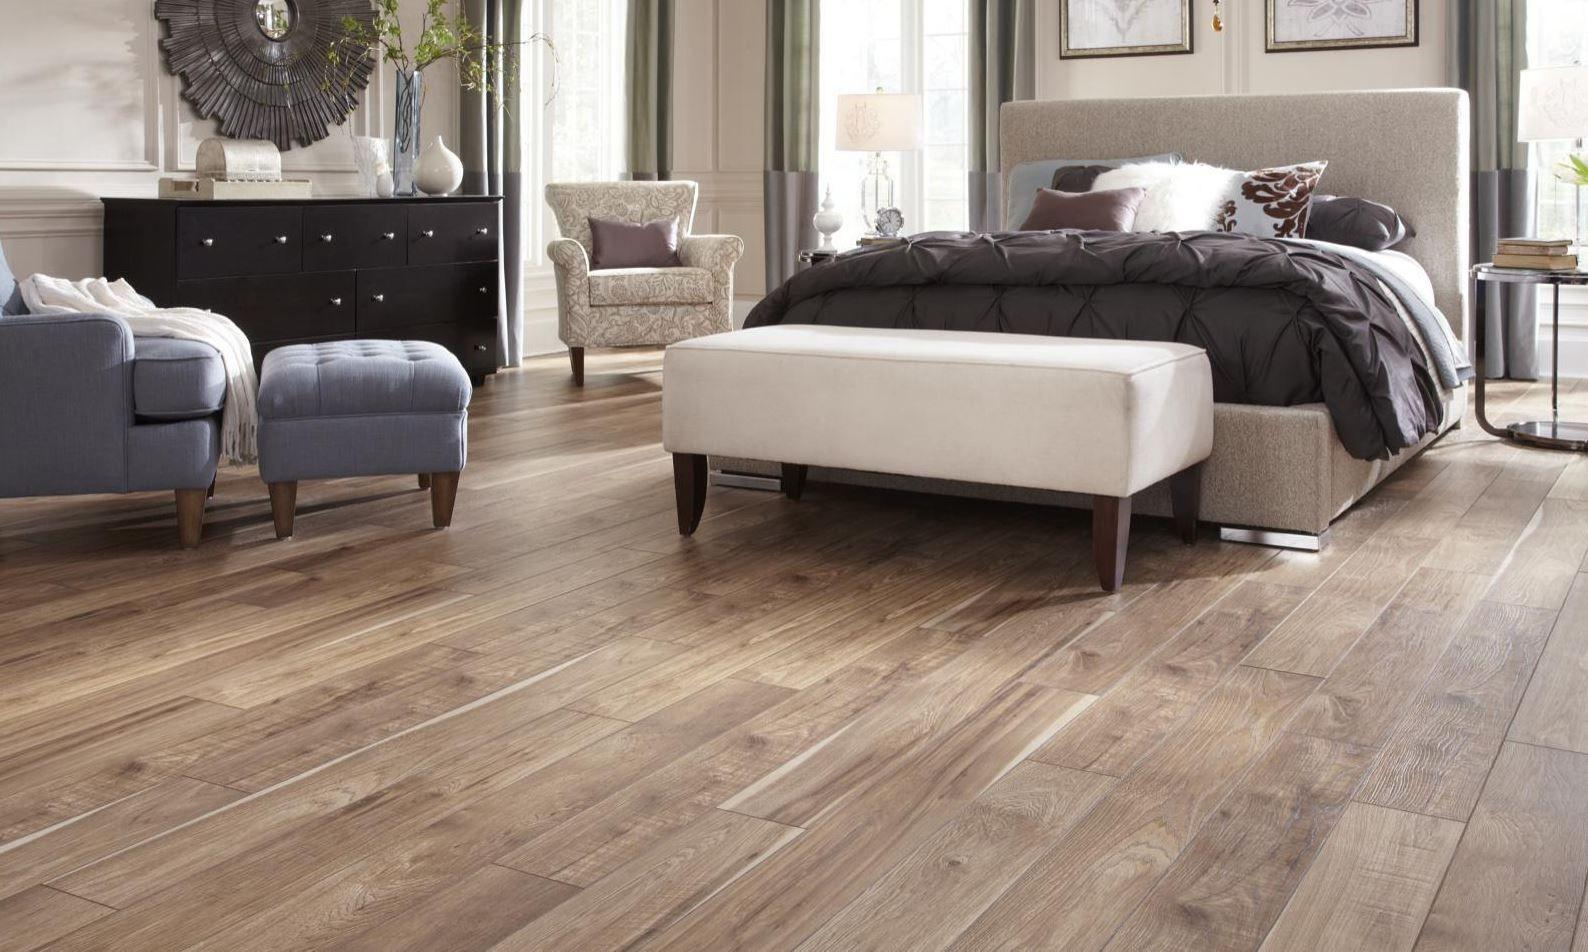 How You Can Re-Think Luxury Vinyl Plank